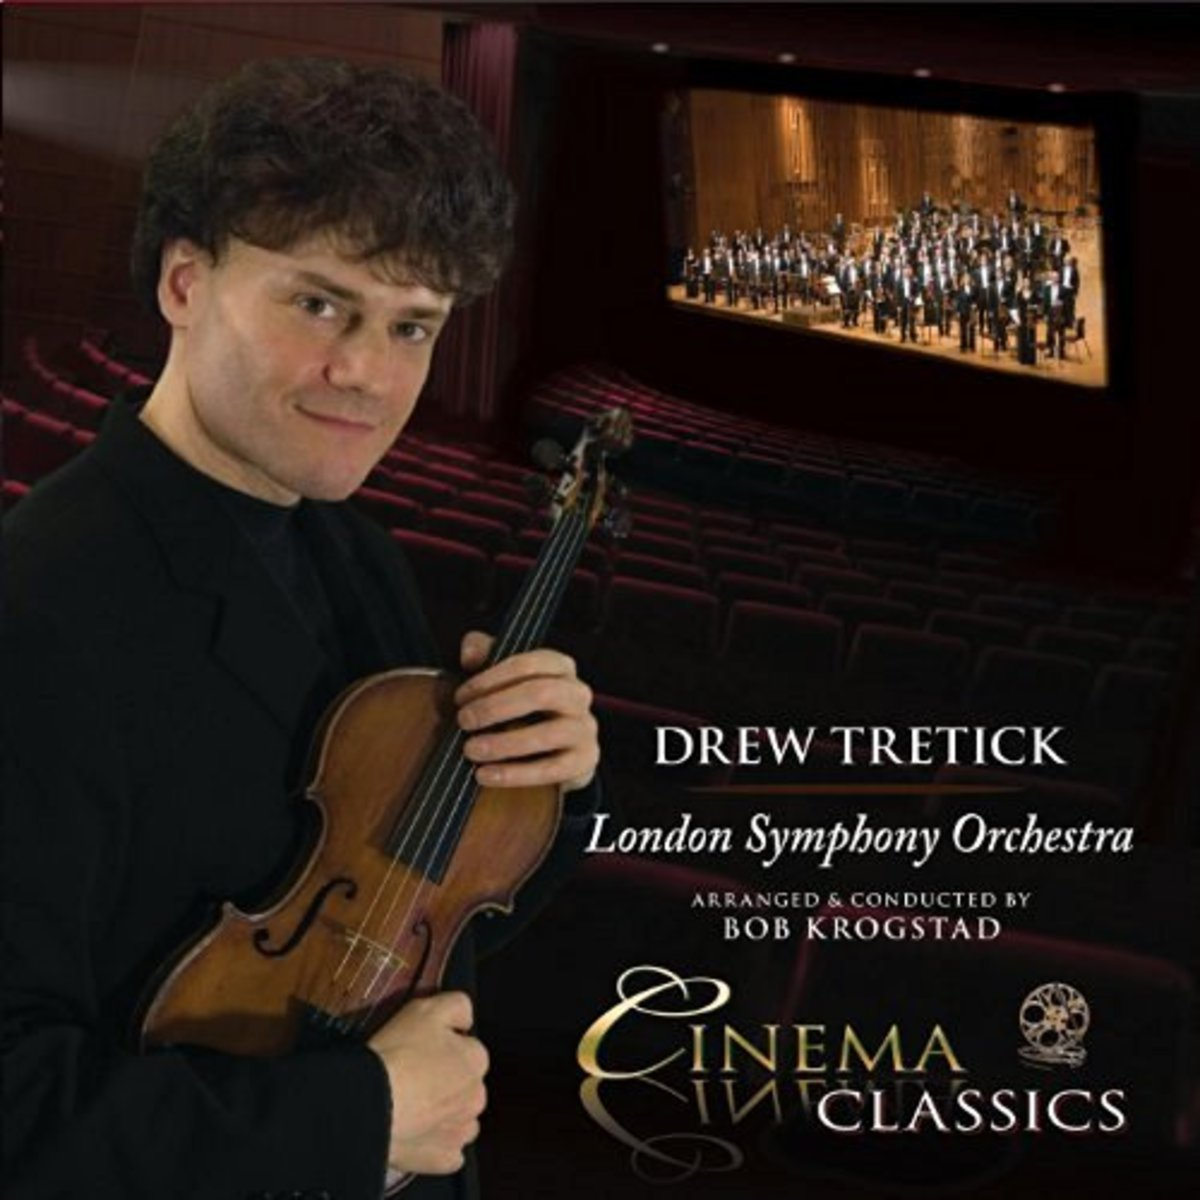 Drew Tretick's London Symphony Orchestra recording with legendary arranger, Bob Krogstad (Natalie Cole, Mel Torme, Michael Crawford, Disney, etc.); a collection of Cinema Classics meticulously engineered by Drew and 4-time Grammy winner John Kurlande